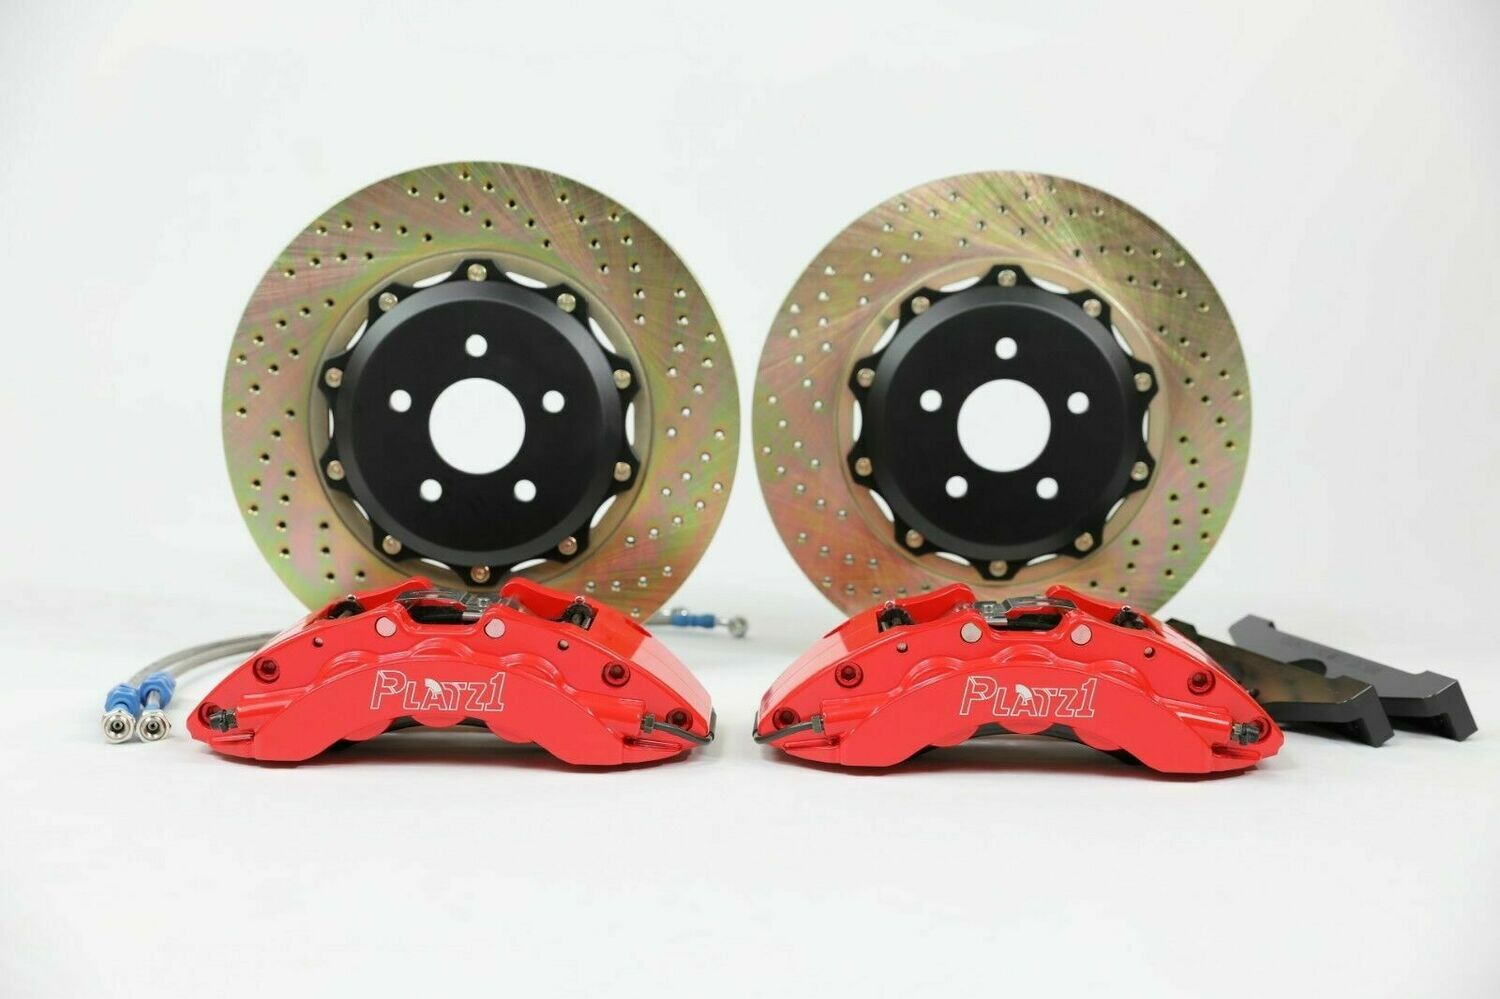 Platz1 Front Big Brake Kit 6-pot Caliper 355mm Rotors for Ford Focus ST MK3/2014